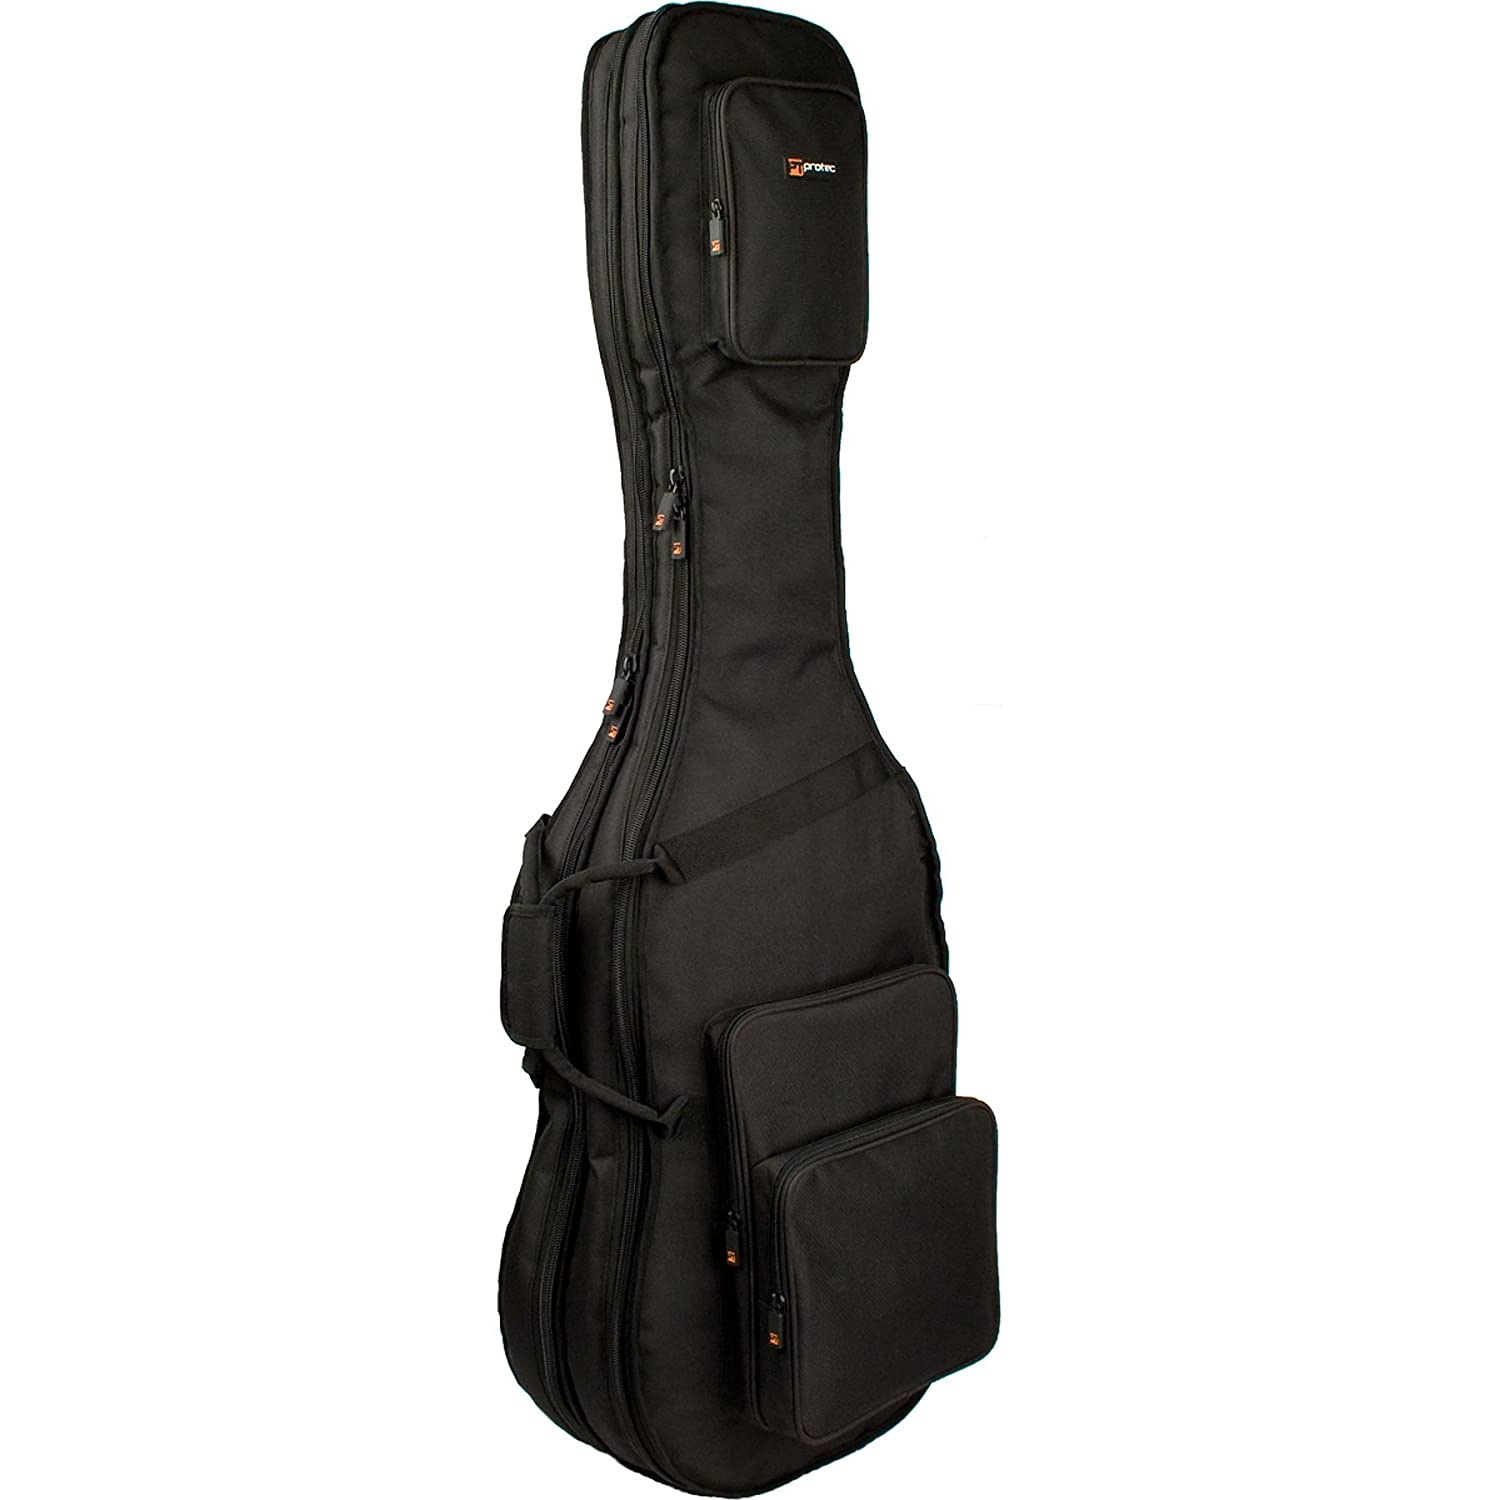 Protec CF233DBL Double Bass Guitar Gig Bag-Gold Series